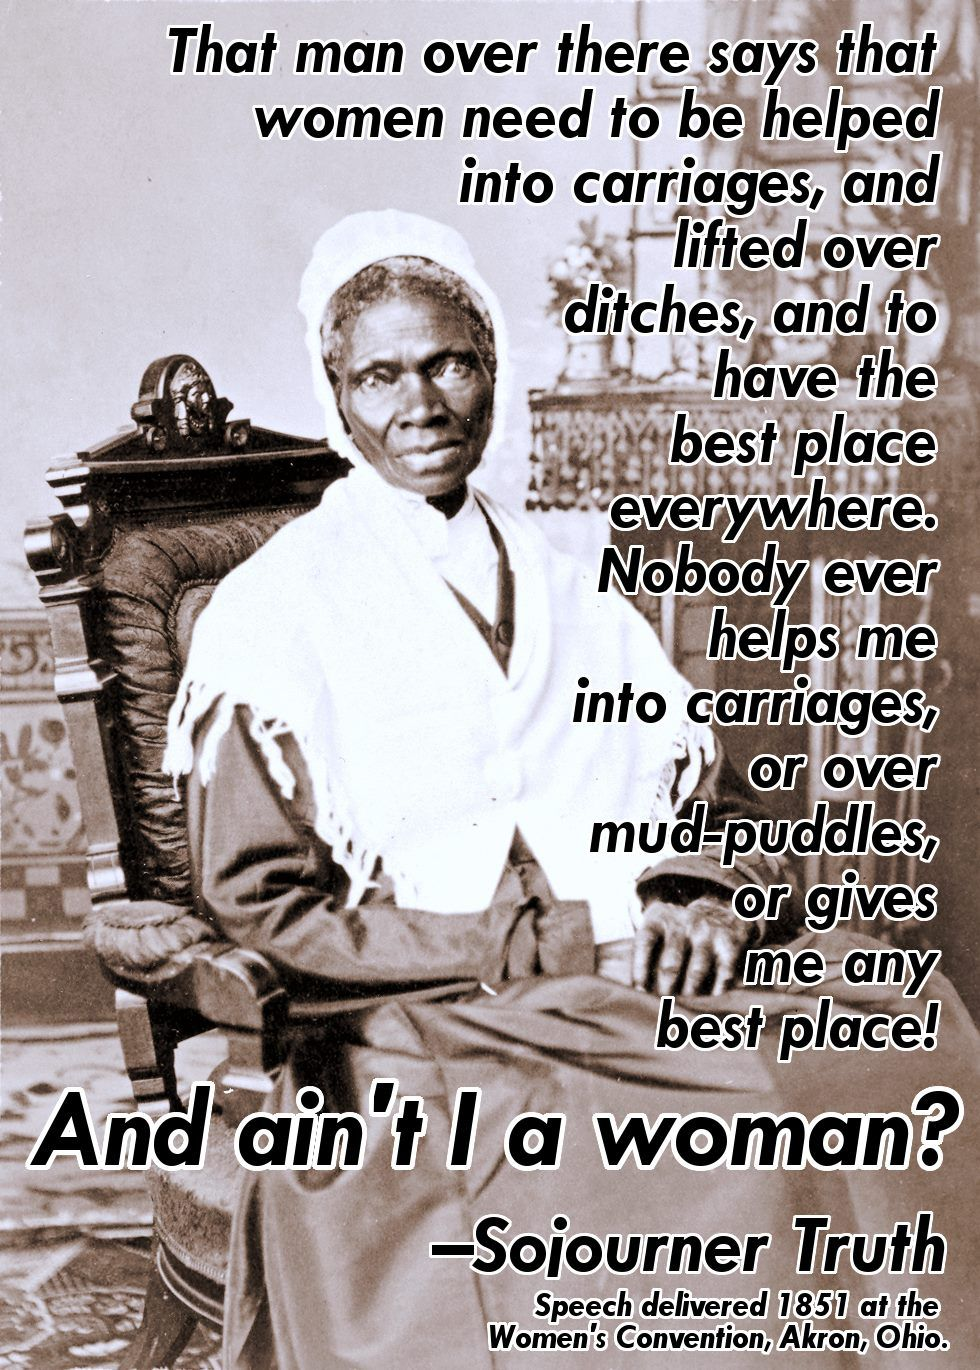 """That man over there says that women need to be helped into carriages, and lifted over ditches, and to have the best place everywhere. Nobody ever helps me into carriages, or over mud puddles, or give me any best place! And ain't I a woman?""  ~ Sojourner Truth (1797 - 1883)  On May 29, 1851 Sojourner Truth delivered her ""Ain't I A Woman?"" speech at the Women's Rights Convention in Akron, Ohio.  Read the speech here: http://www.nps.gov/wori/historyculture/sojourner-truth.htm"